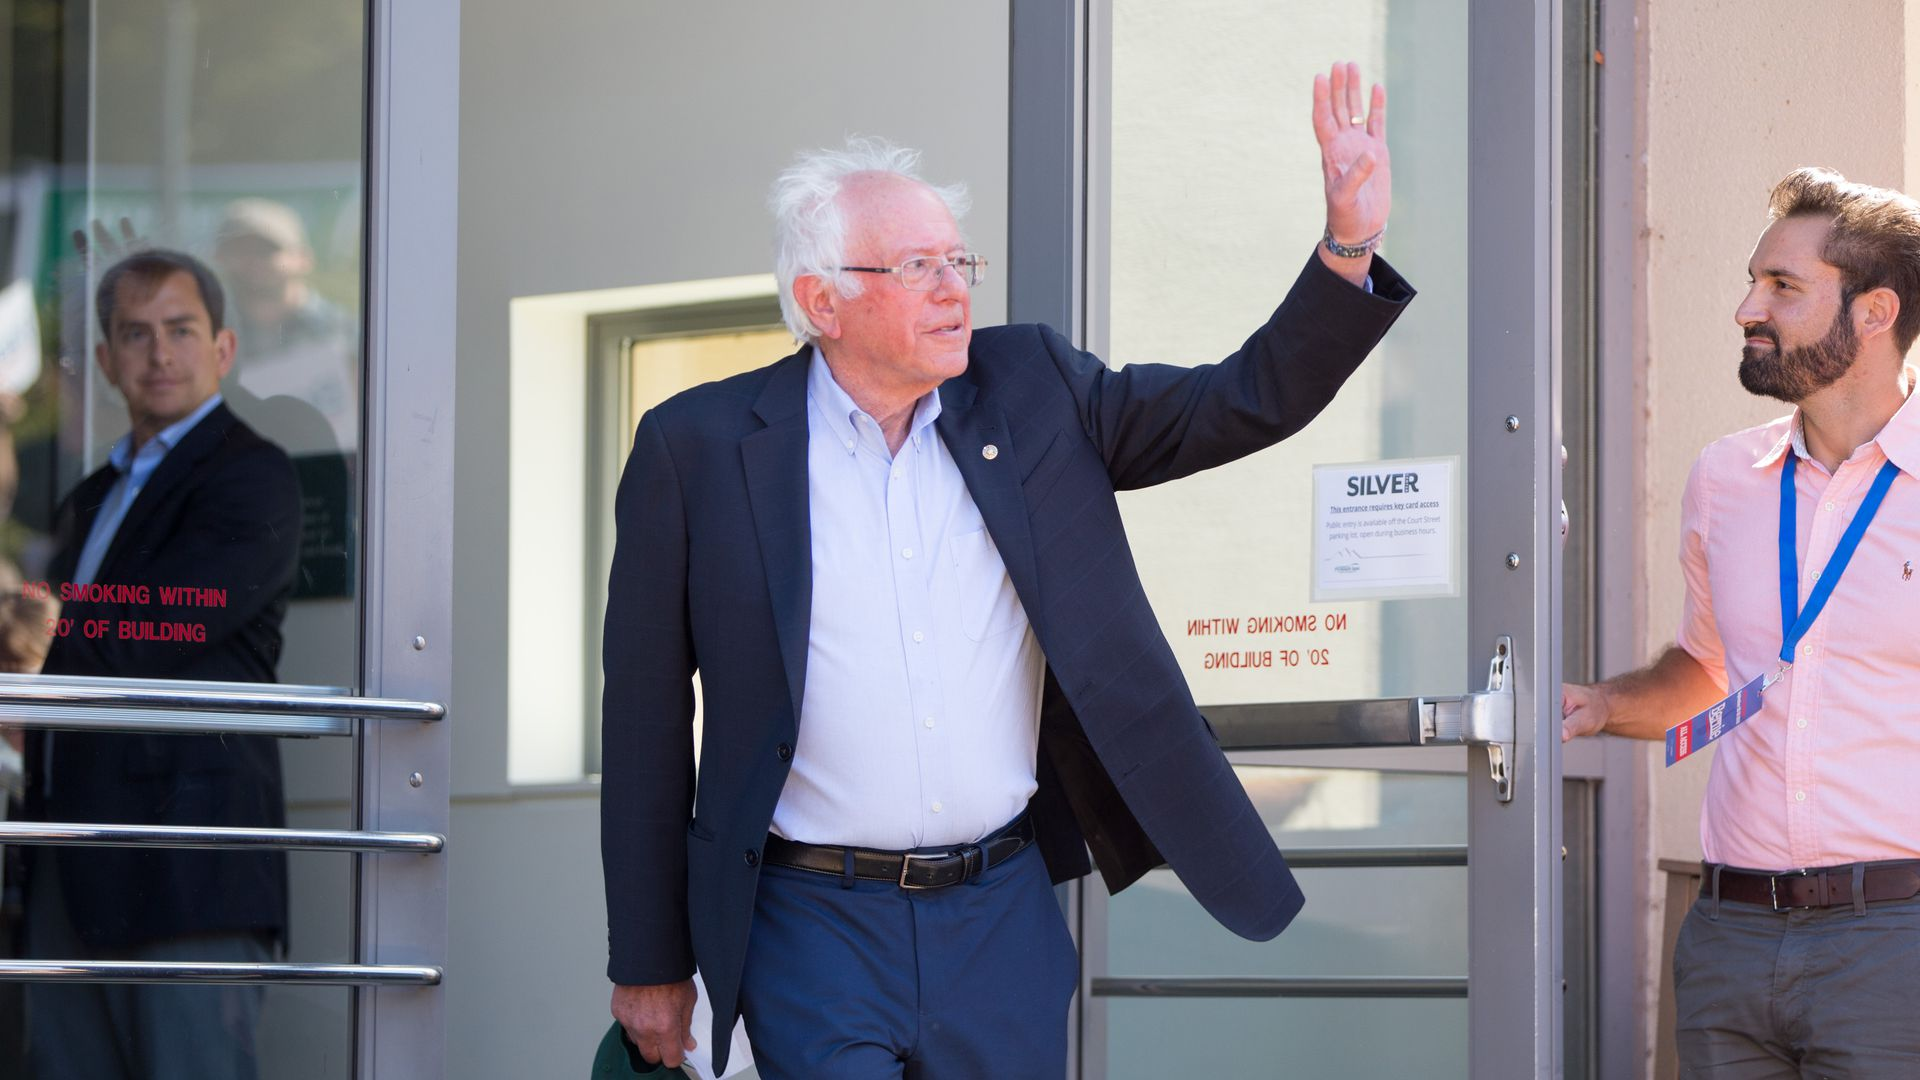 Sen. Bernie Sanders waves at a campaign event last month.